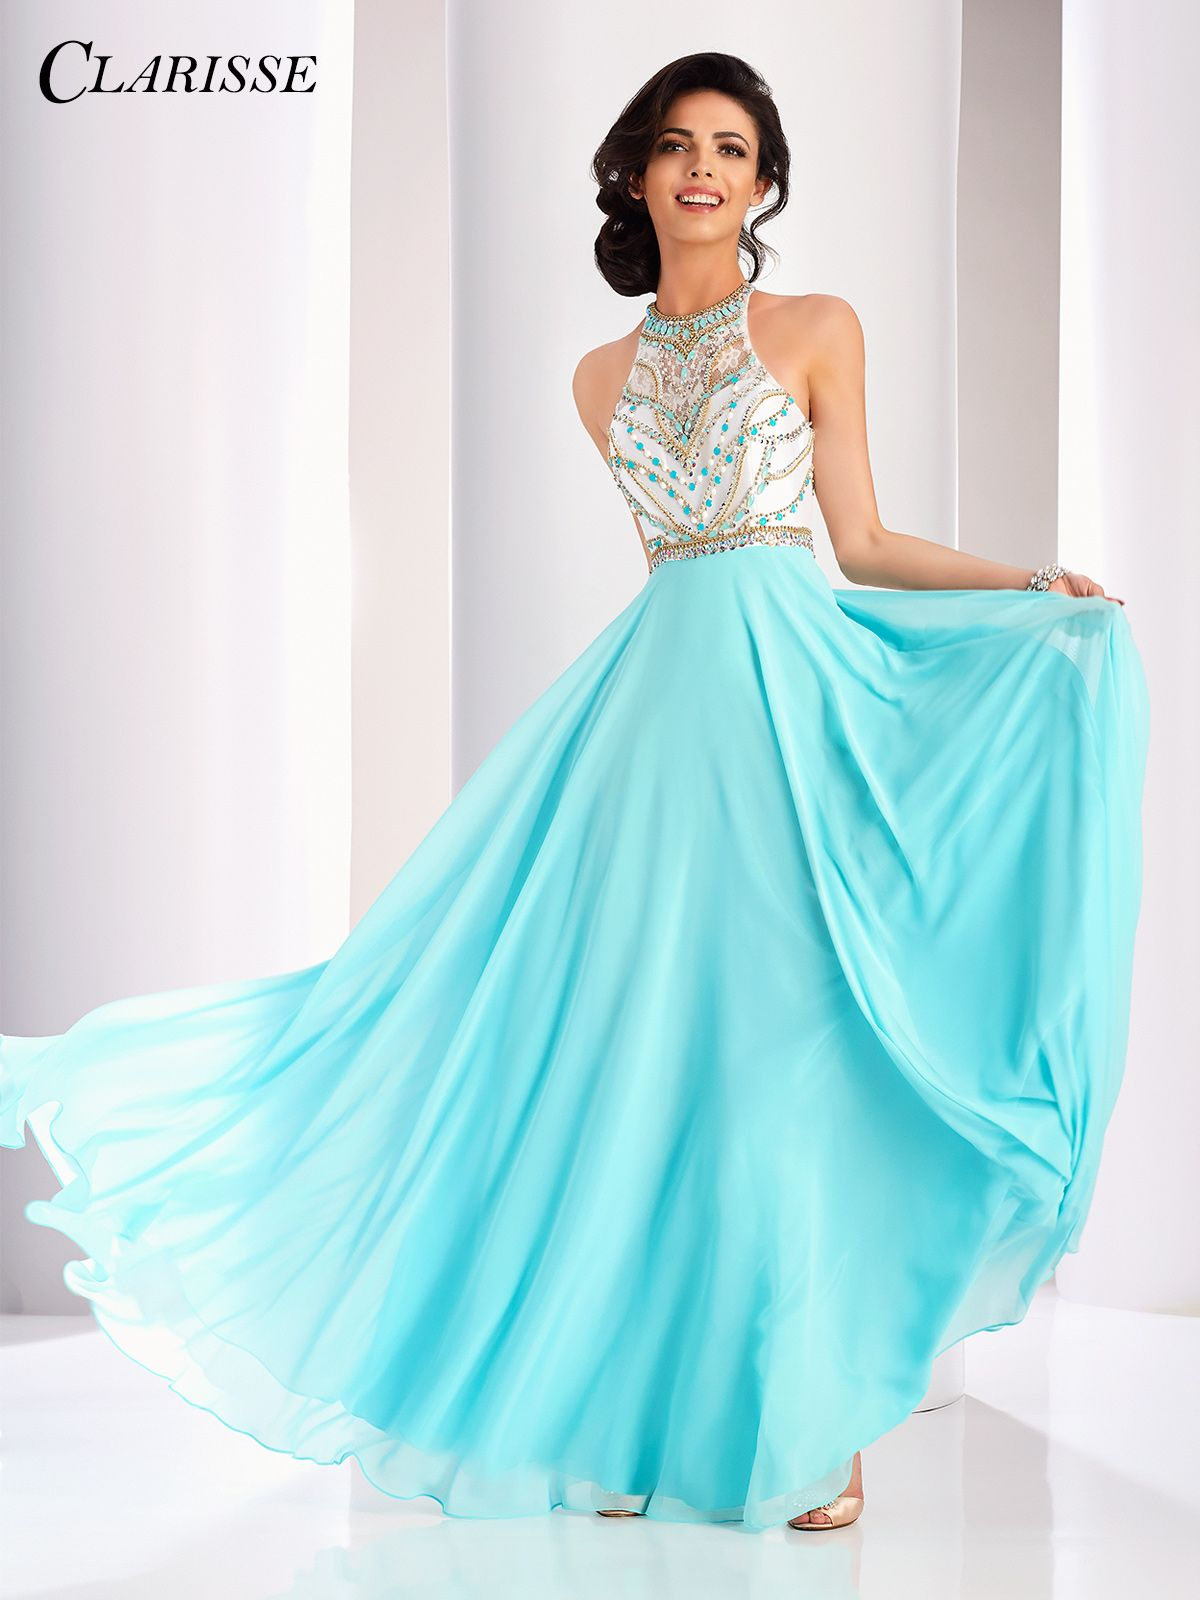 Clarisse Color Block A-line Prom Dress 3069 | Unique vintage, Lace ...